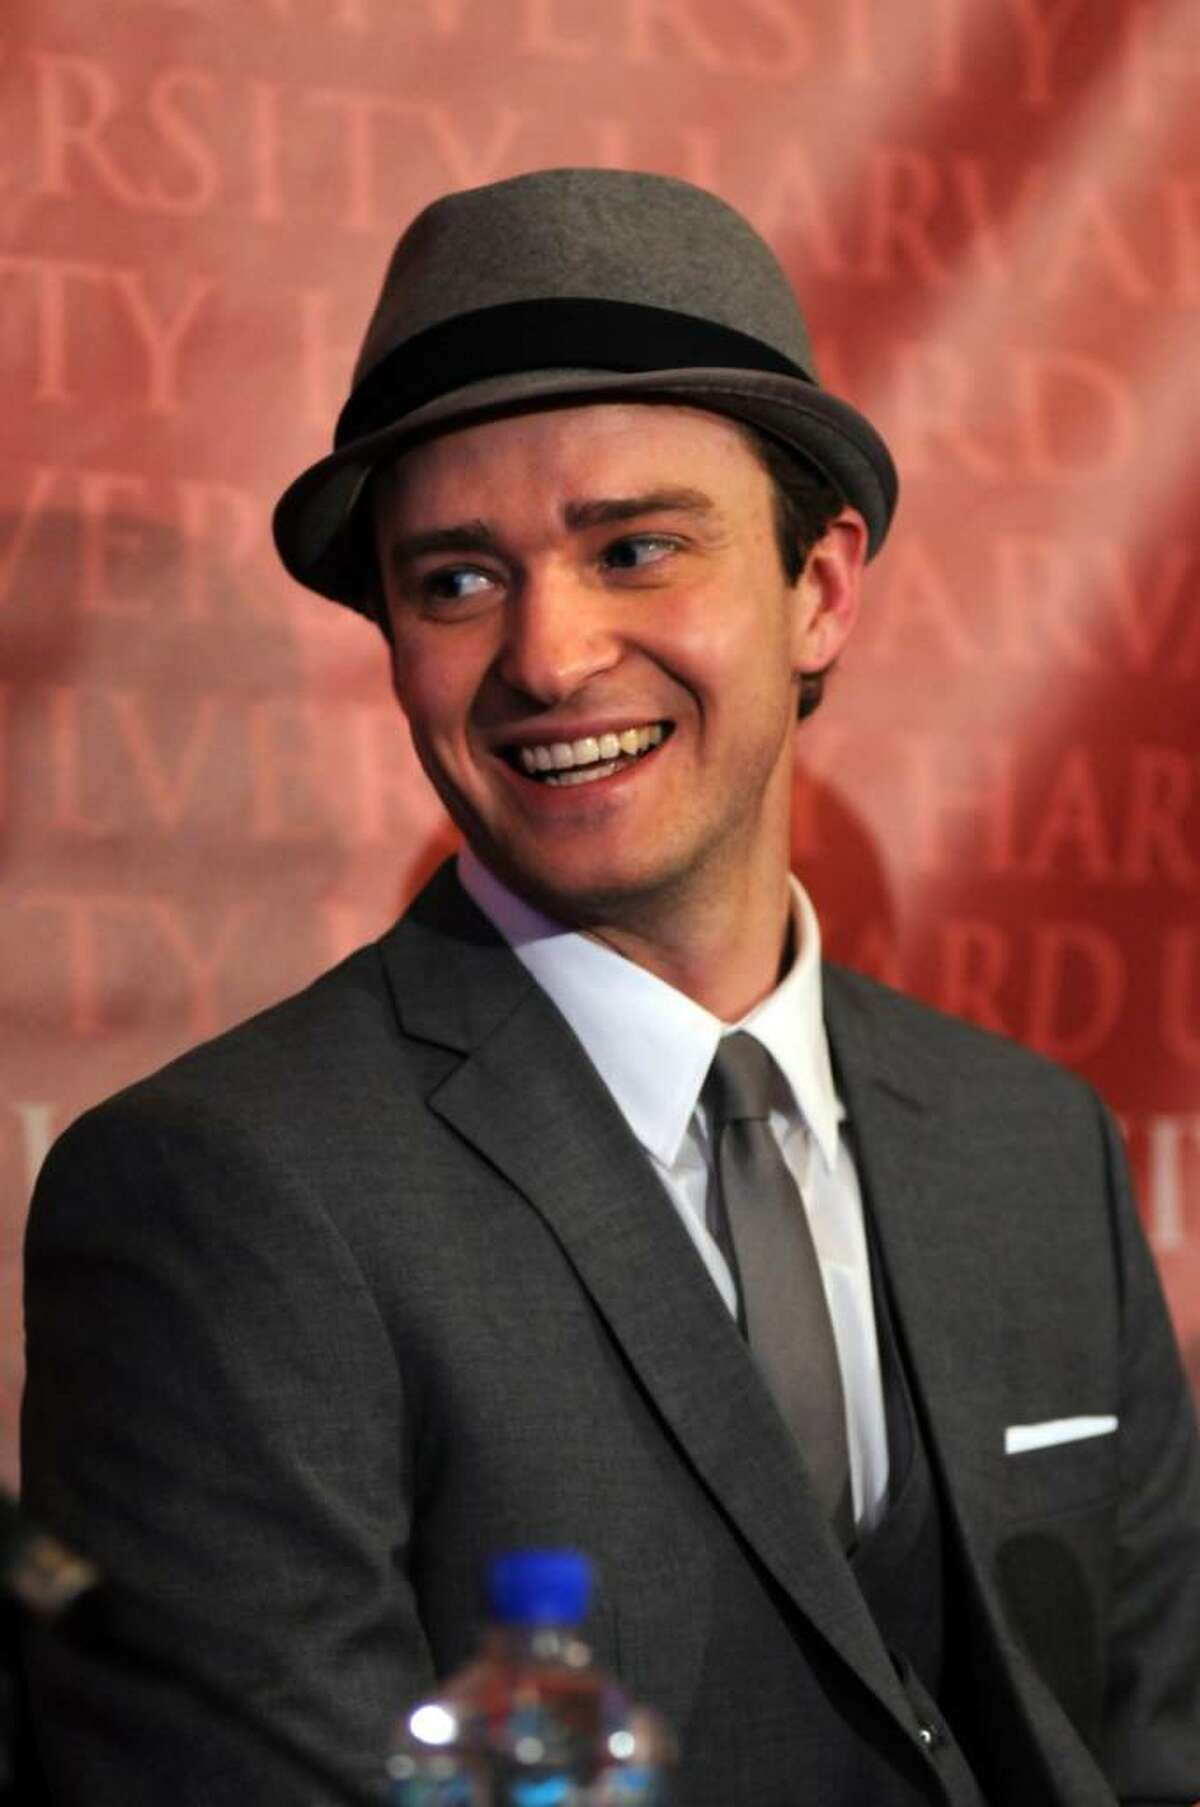 CAMBRIDGE, MA - FEBRUARY 5: Justin Timberlake speaks at a press conference after receiving his Hasty Pudding Pot Man of the Year award at Harvard University on February 5, 2010 in Cambridge, Massachusetts. Timberlake was roasted during a performance from the Hasty Pudding Club theatricals, the oldest college theatrical group in the nation. (Photo by Darren McCollester/Getty Images) *** Local Caption *** Justin Timberlake